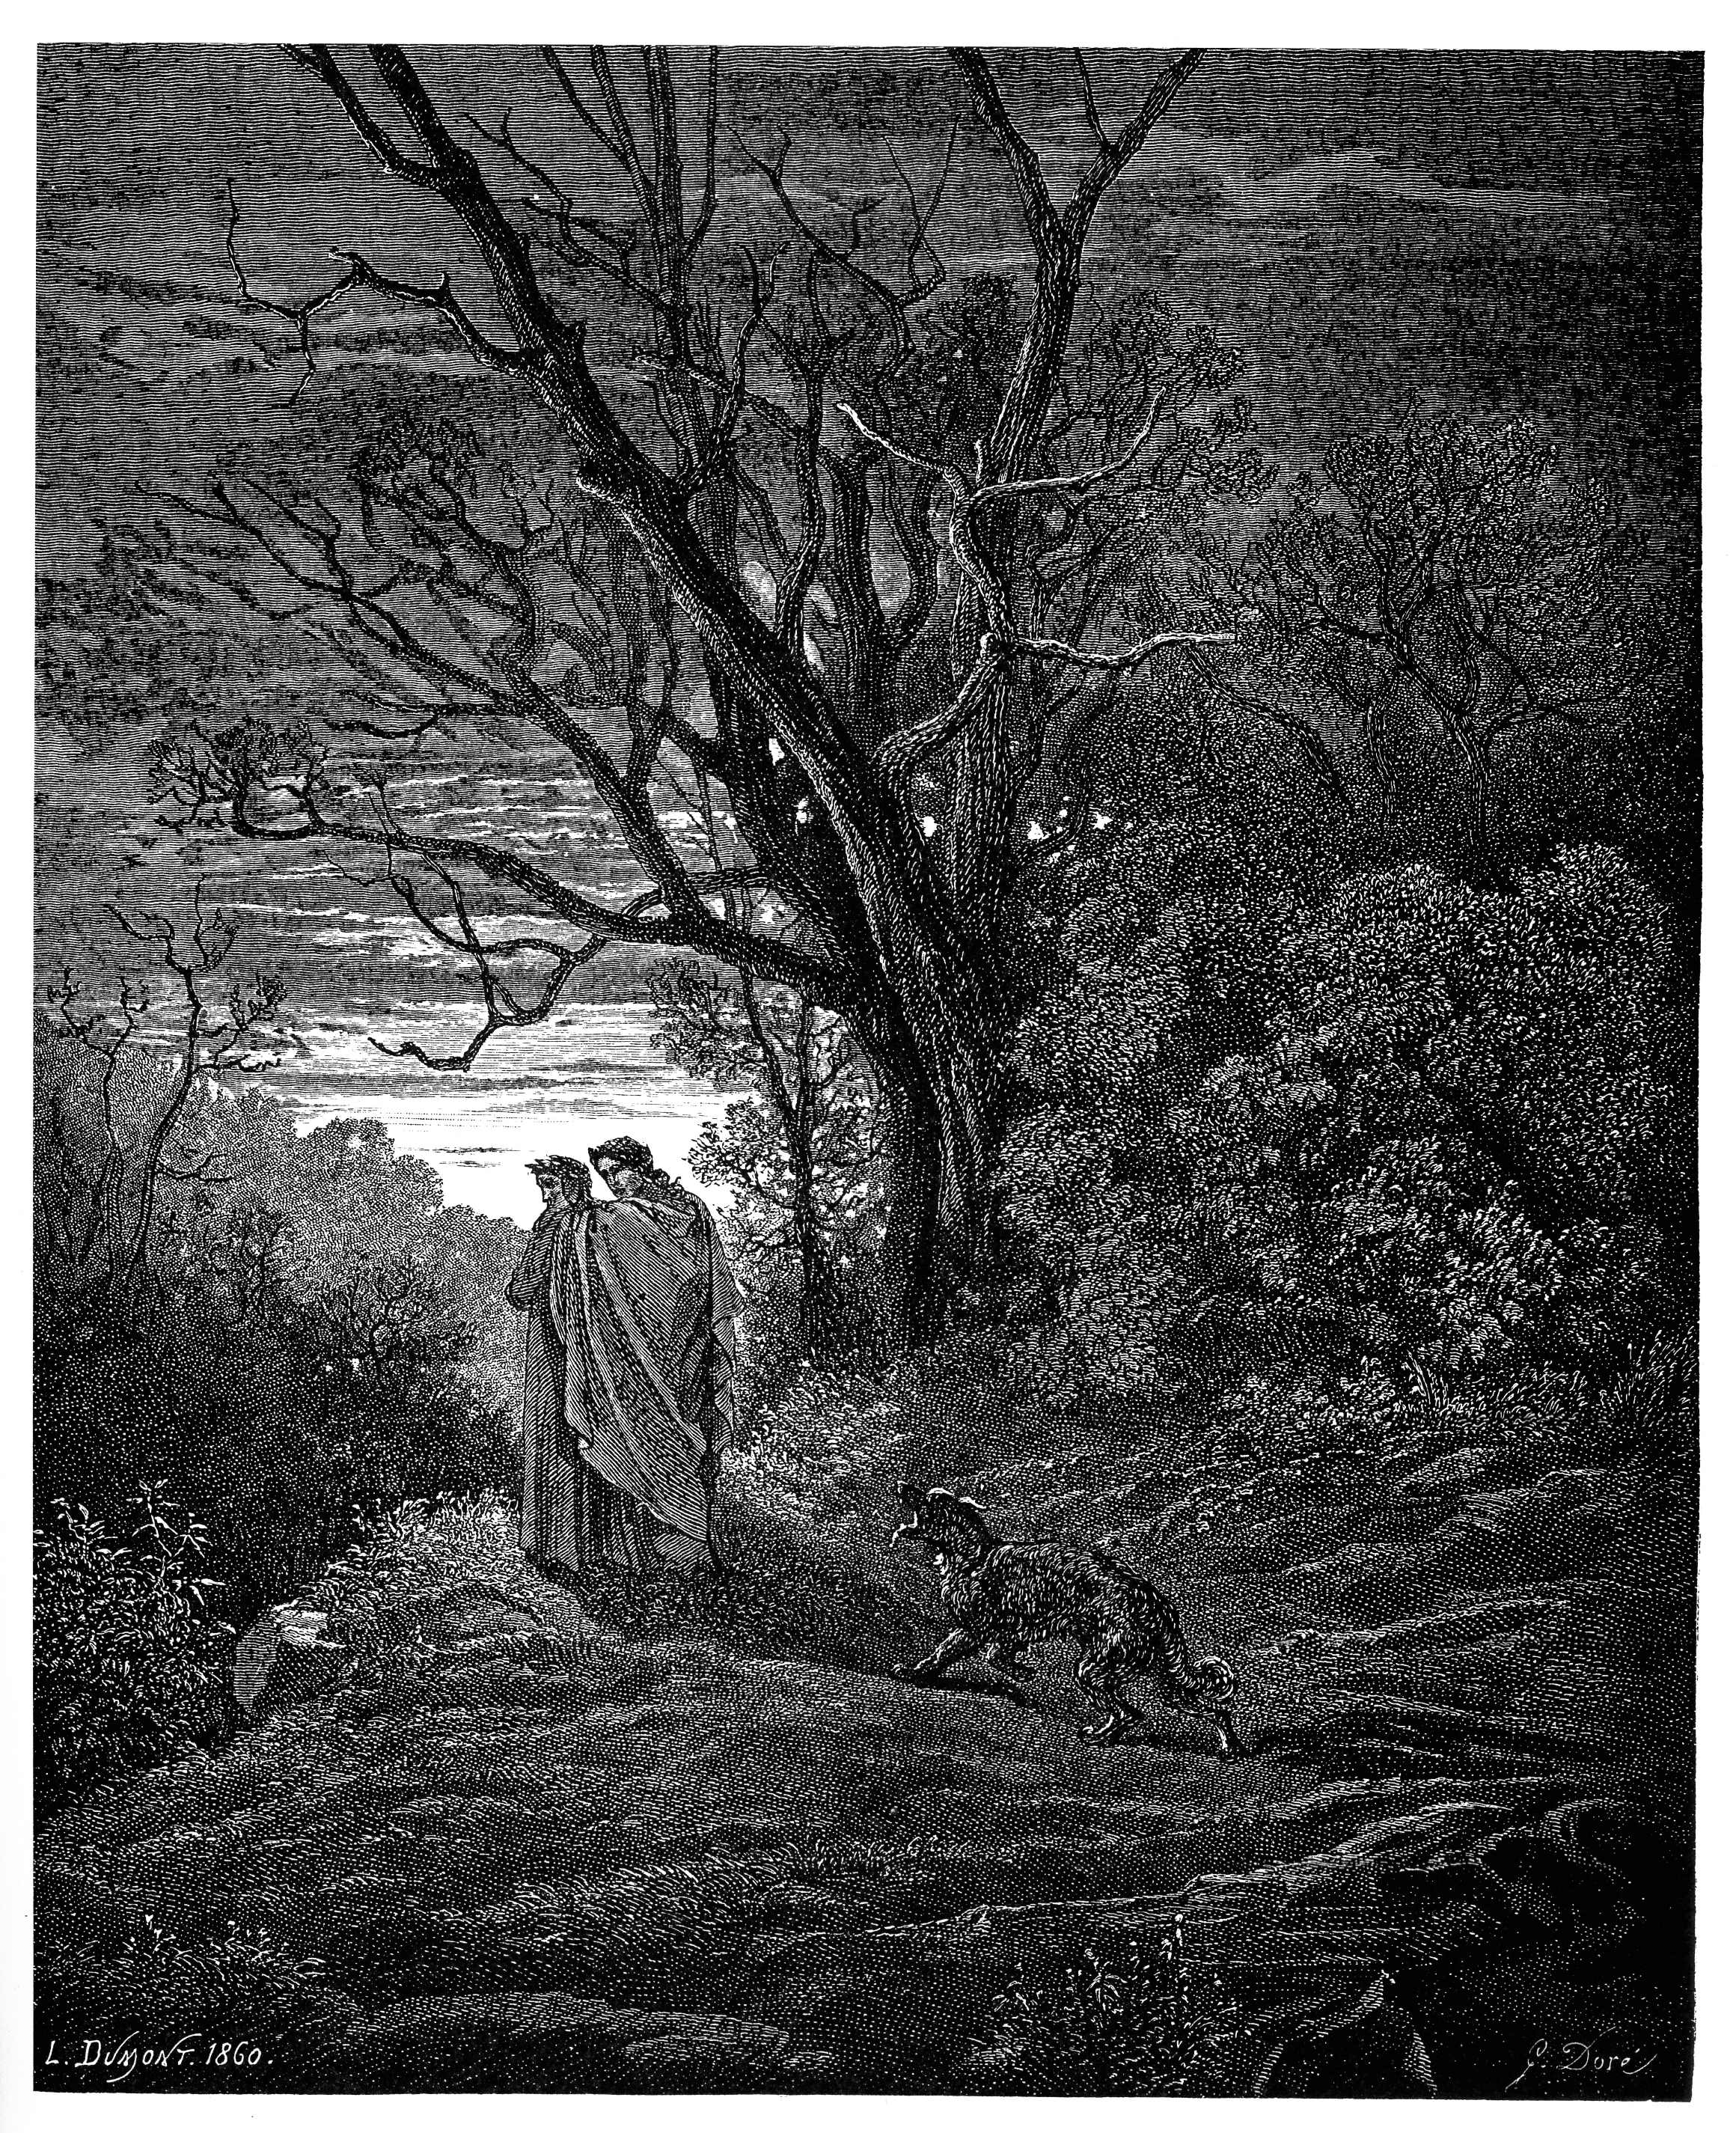 dante alighieri a poetic descent into metaphorical hell Dante alighieri (1265–1321) was a florentine poet, language theorist, and statesman he was born into a noble but impoverished family, which sided with the guelphs (who supported.